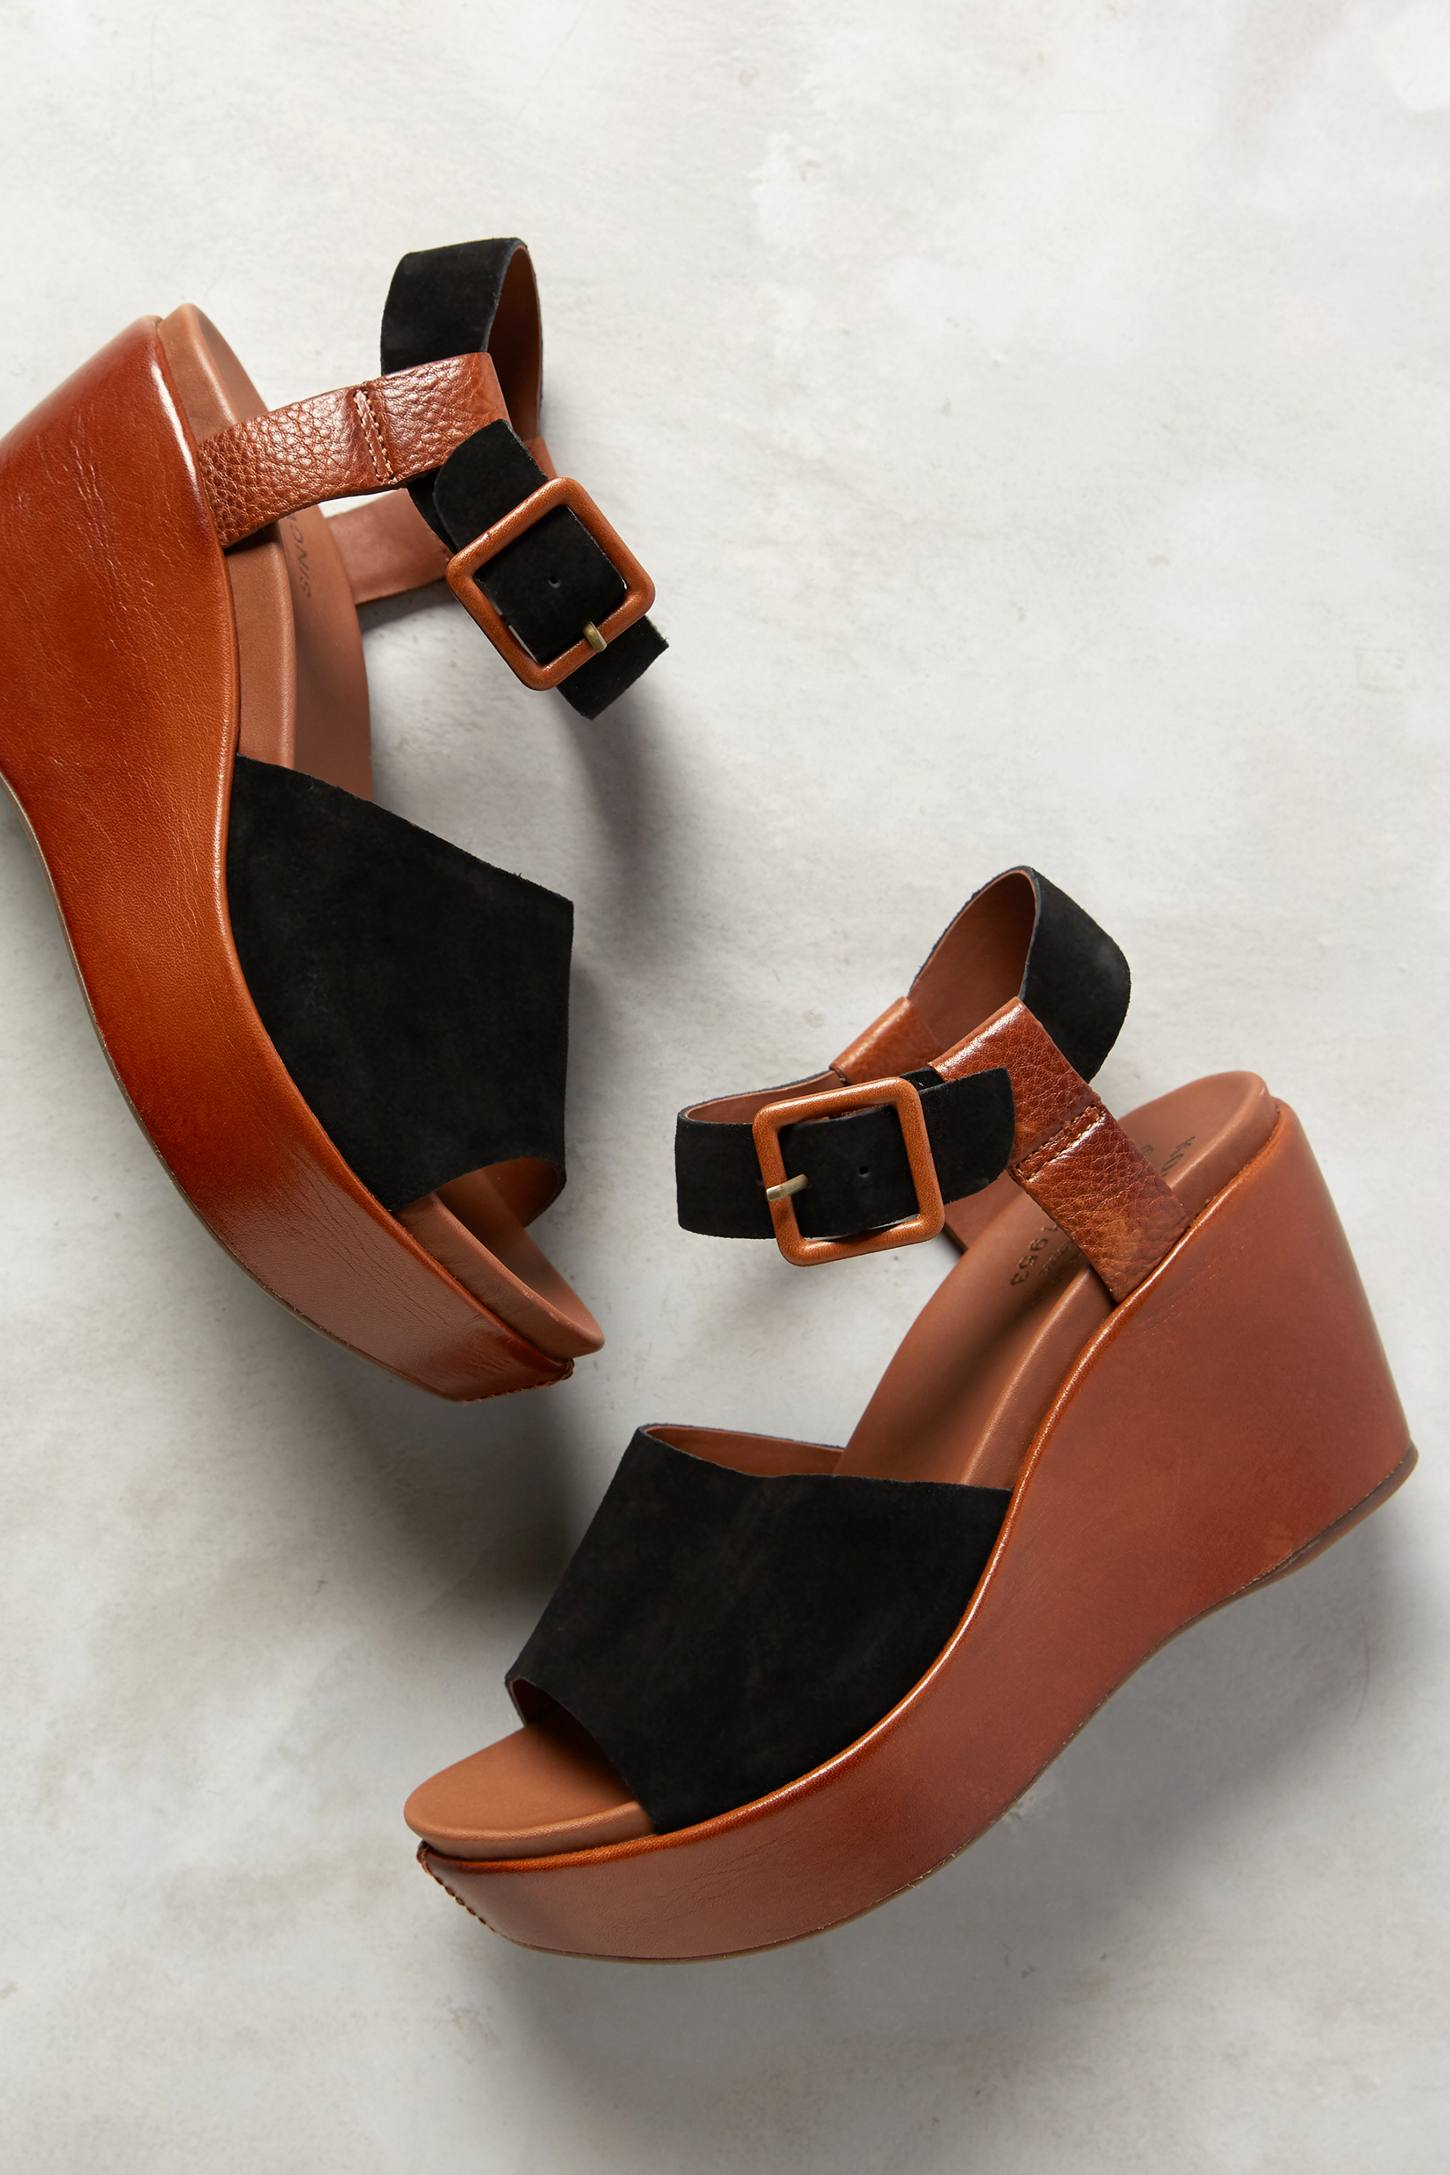 Kork-Ease Keirn Wedges